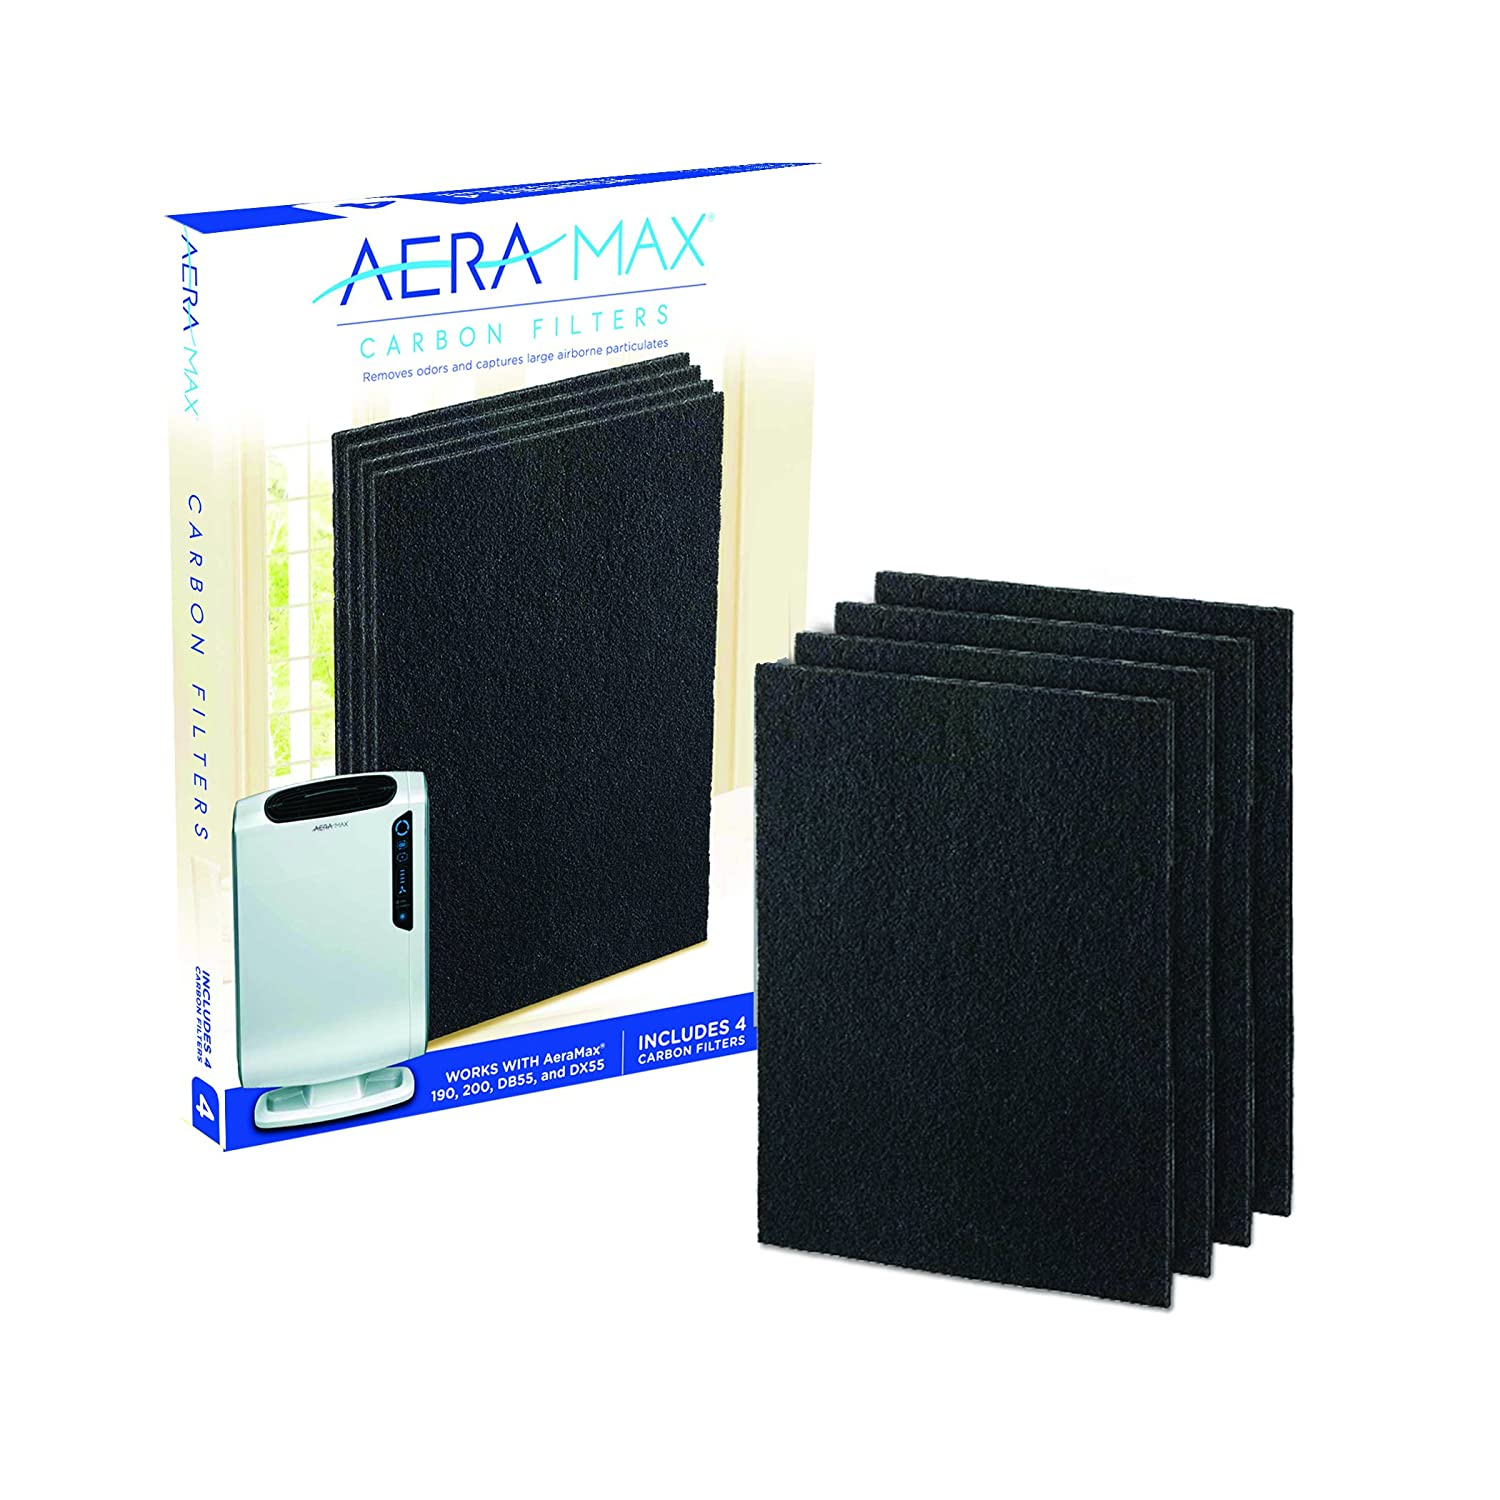 Fellowes 9324101 4-Pack Carbon Filter for AeraMax 200 Air Purifier